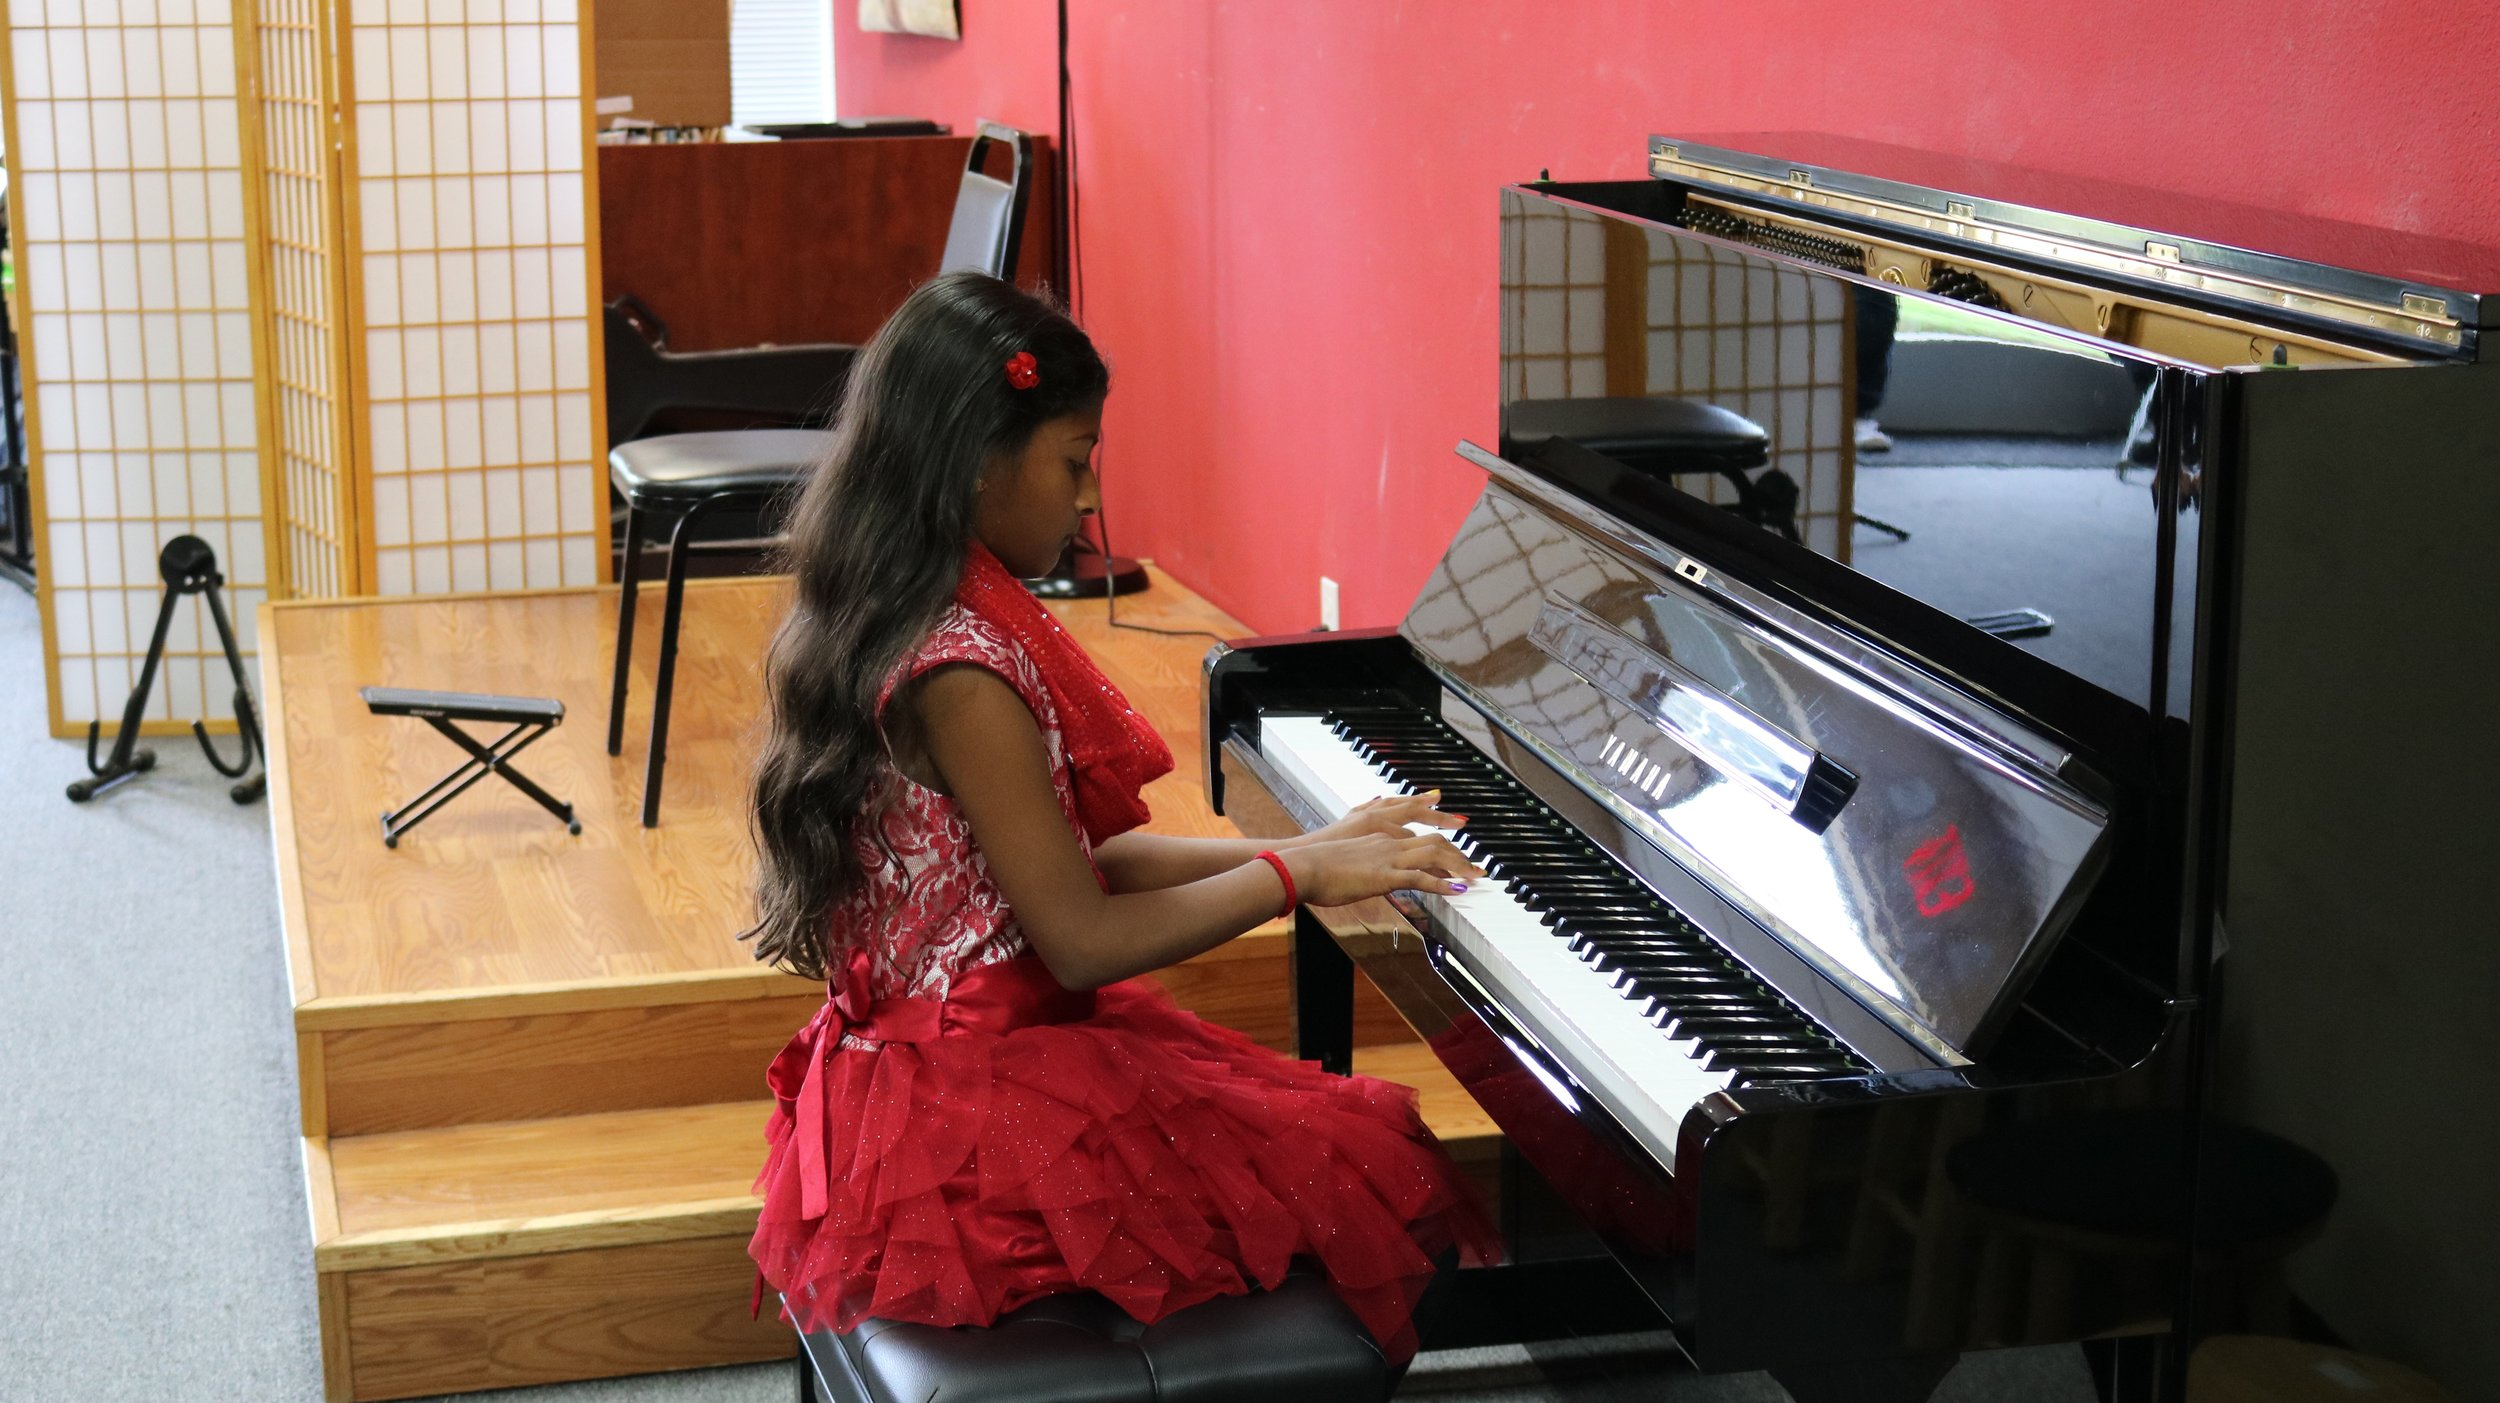 Aanya performing at the CCM Santa Clara recital October 29th